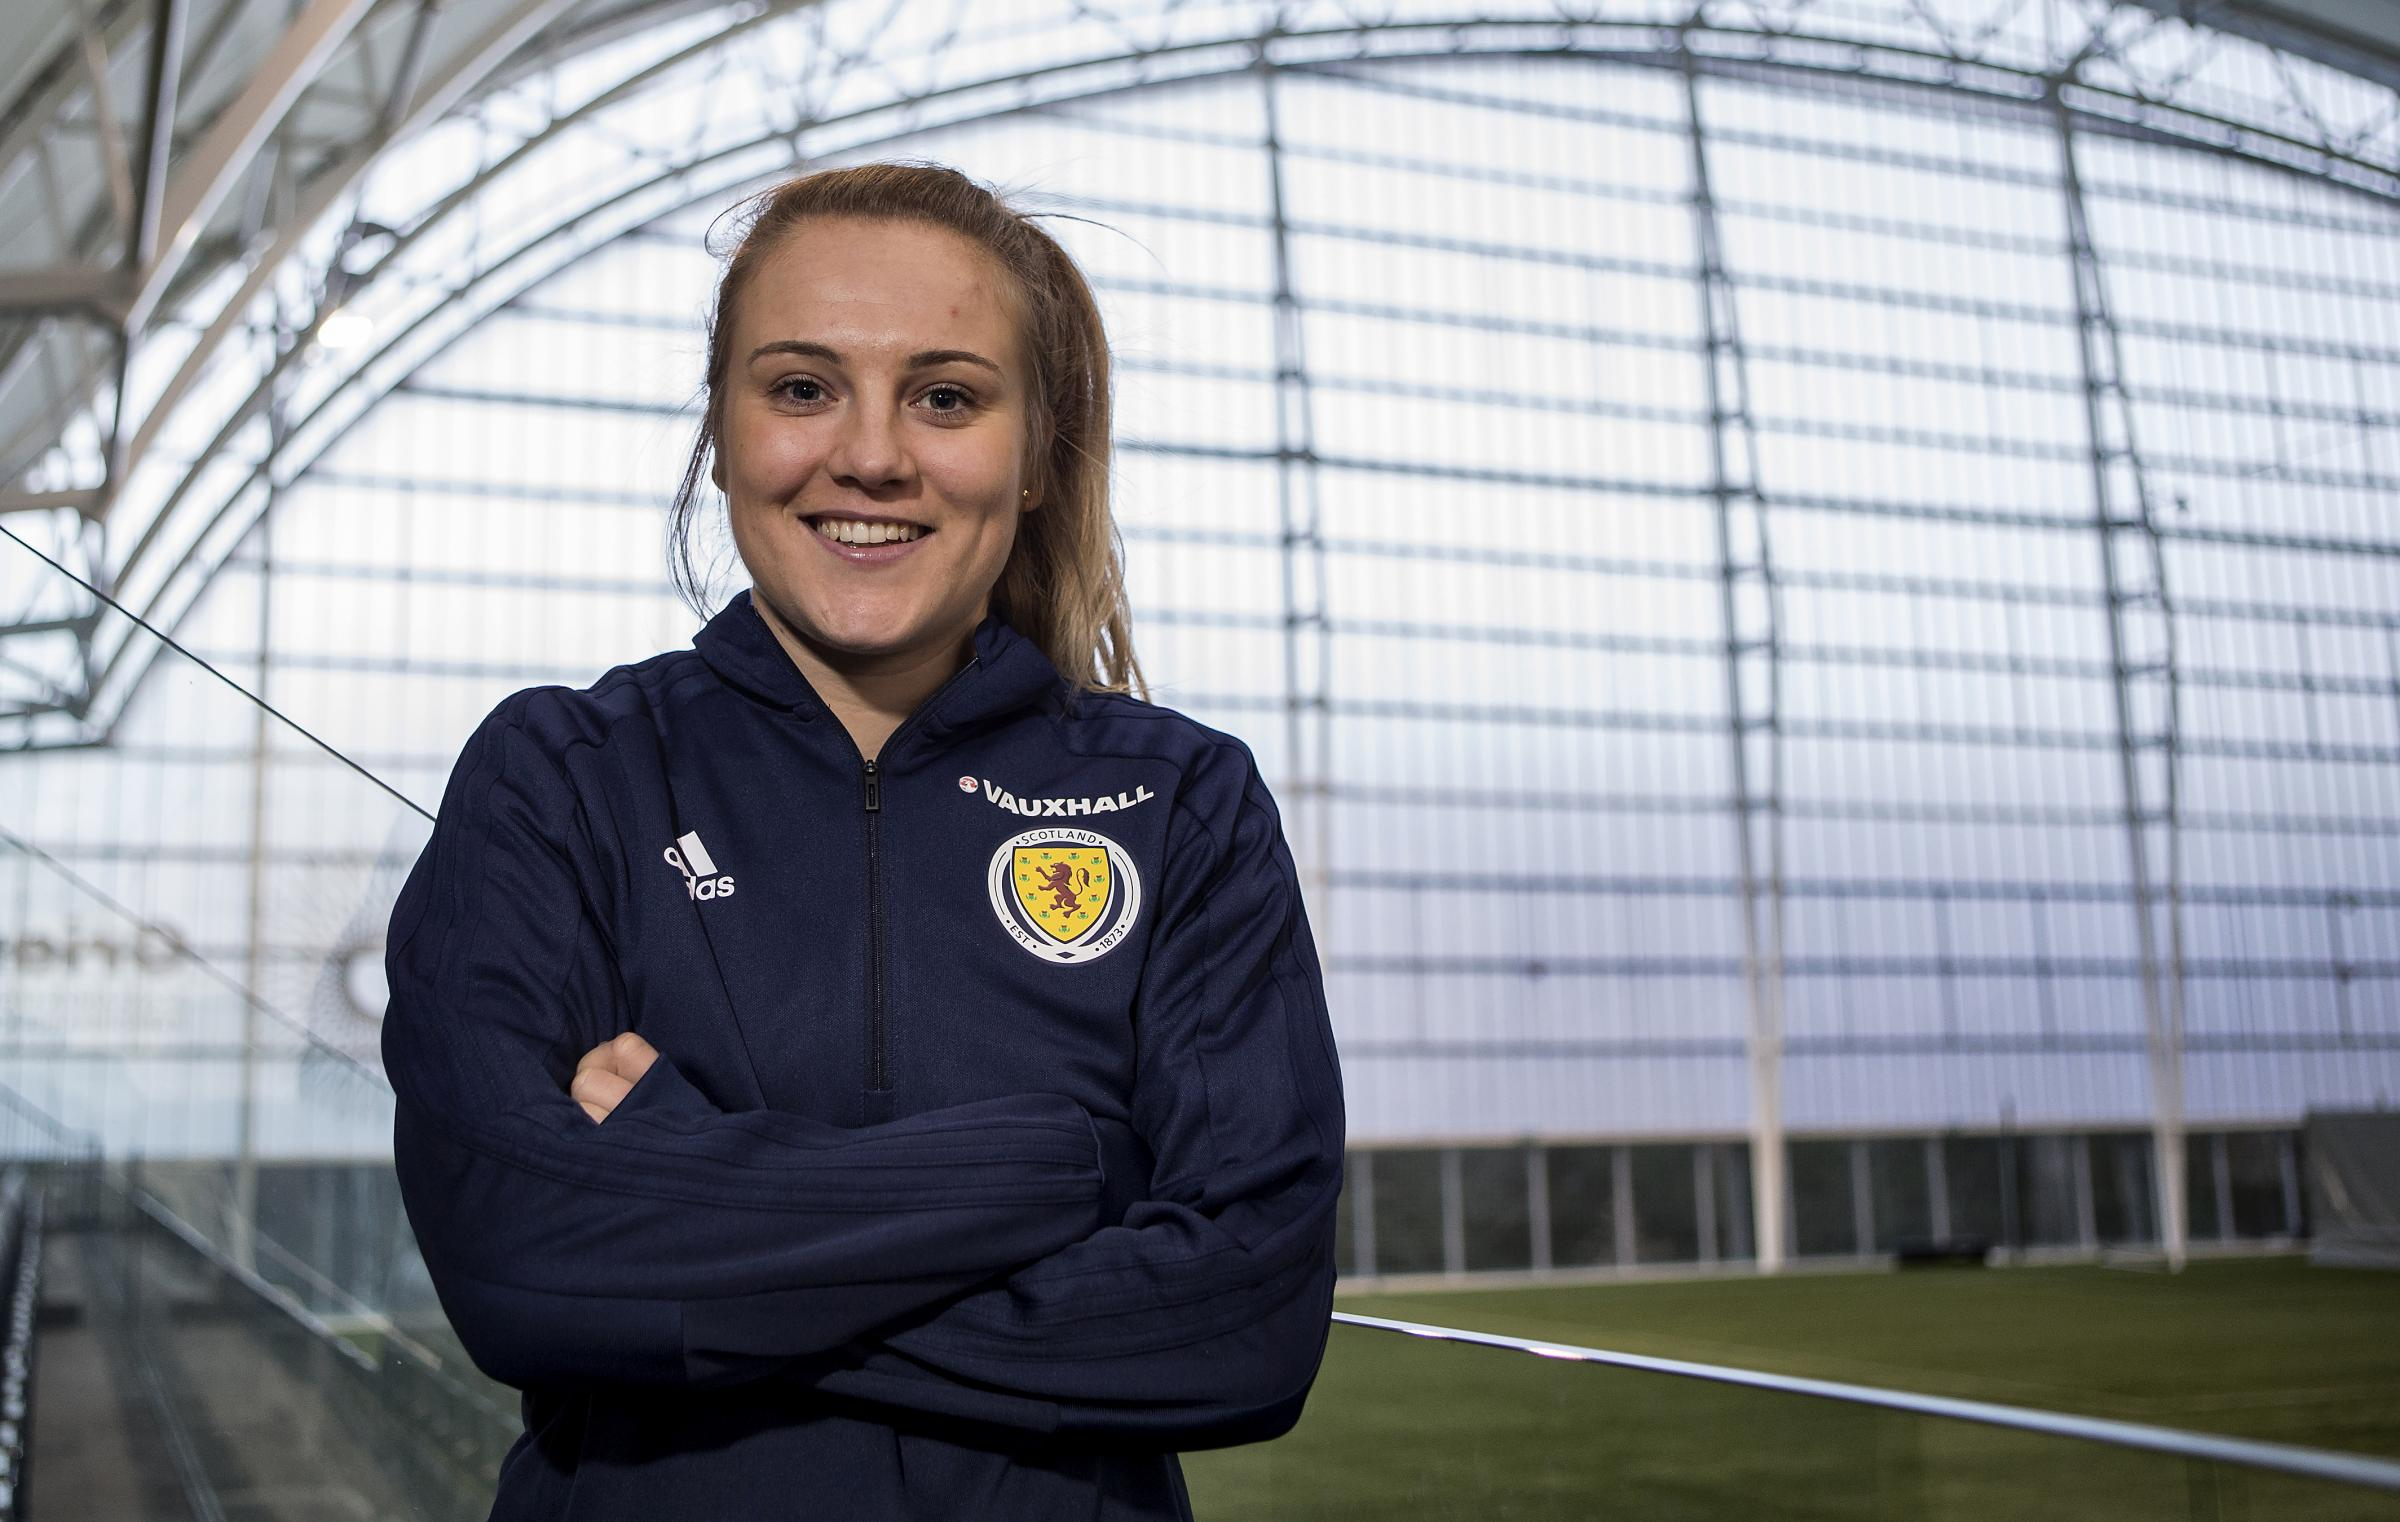 Fiona Brown relishing reaching World Cup after being told she would never play pro football